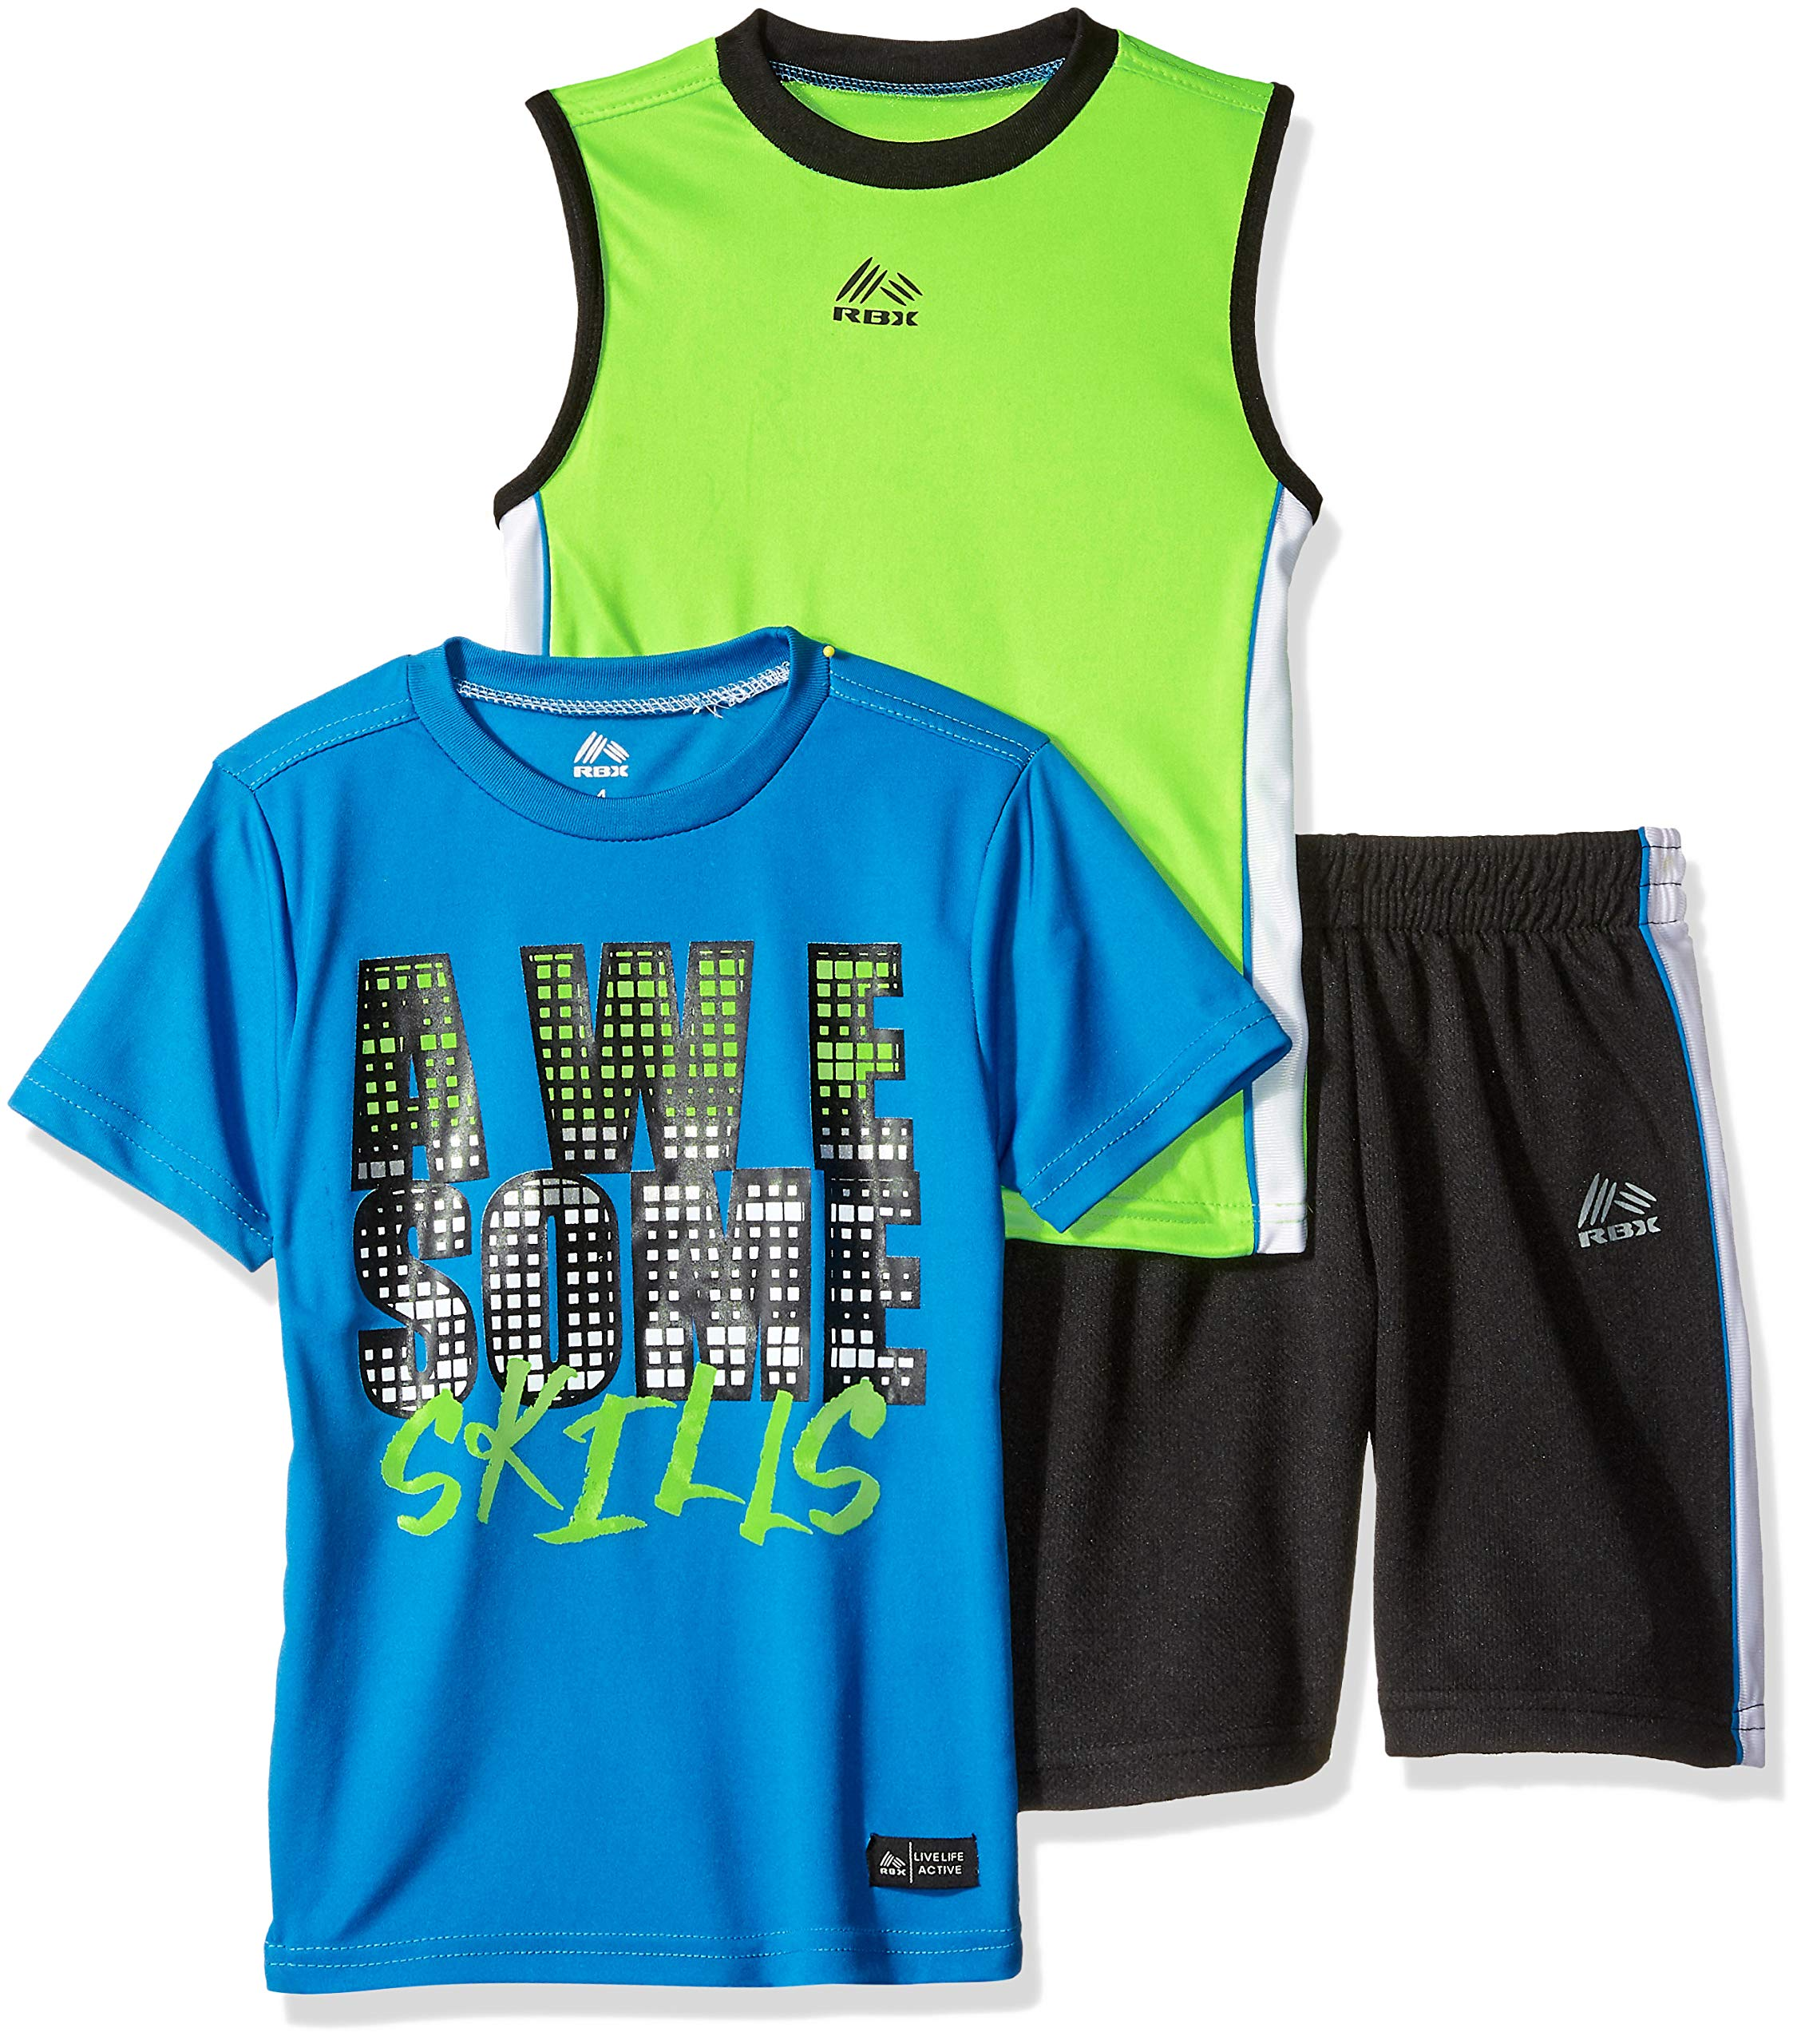 RBX Boys' Little 3 Piece Performance Top, Tank and Short Set, Awesome Blue, 5/6